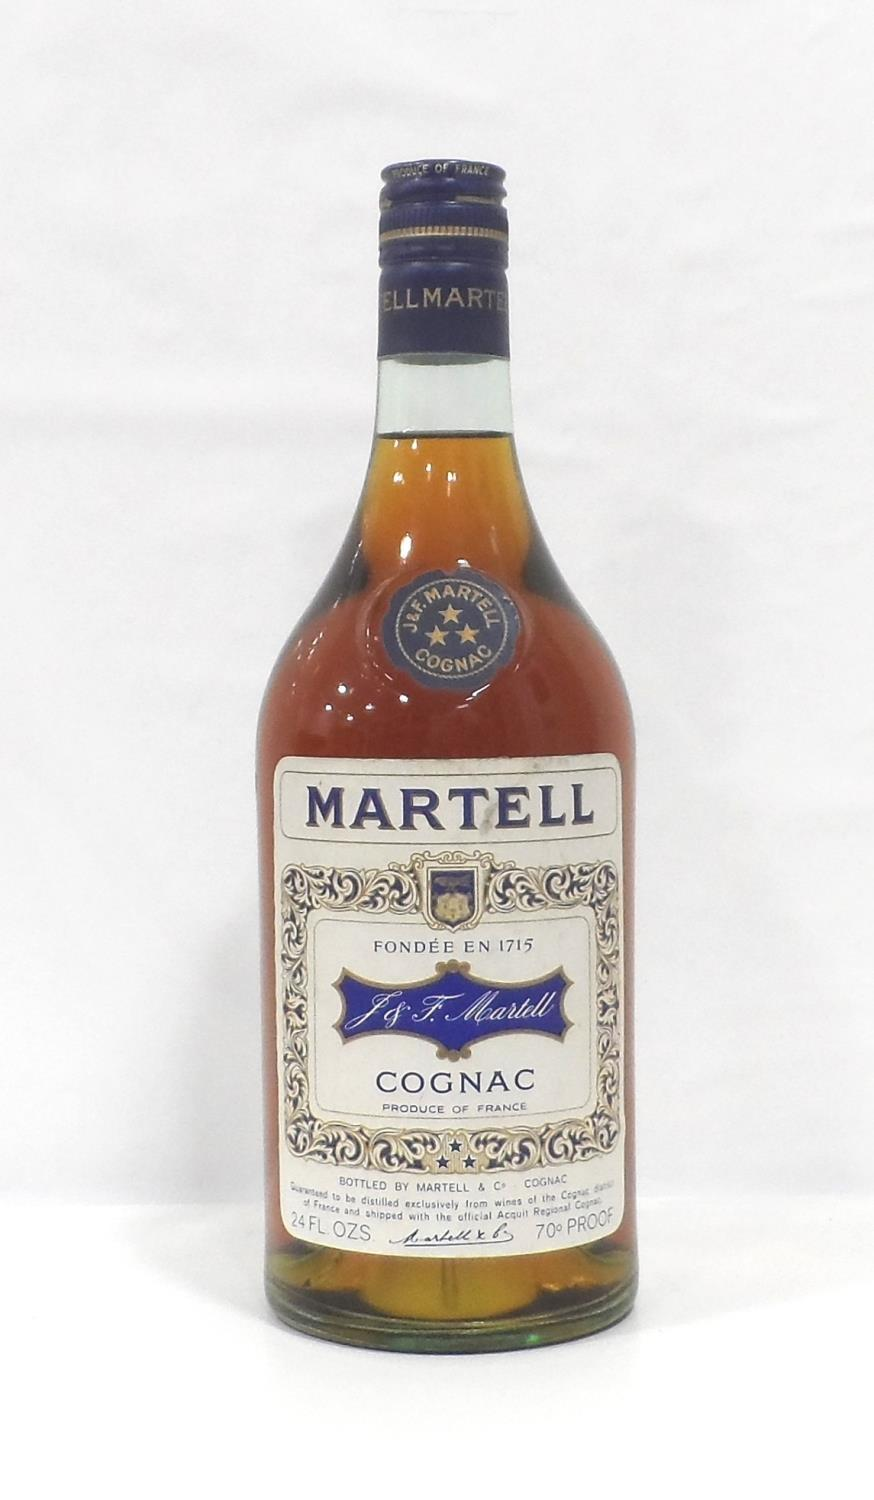 Lot 8 - MARTELL 3 STAR COGNAC CIRCA 1970 An older bottle of Martell 3 star Cognac from the early 1970s. 24